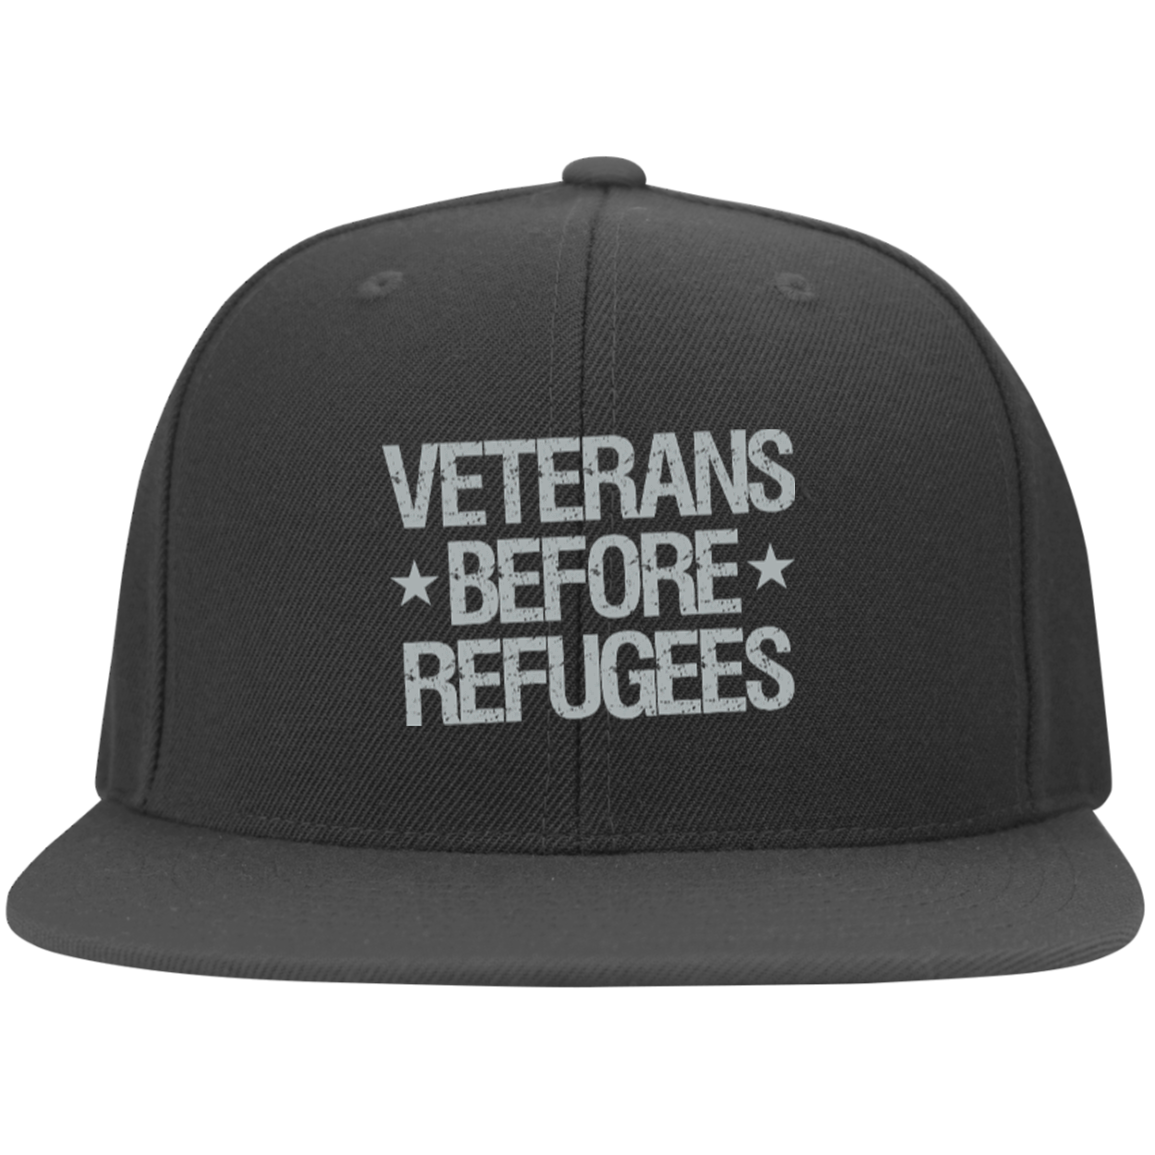 Veterans Before Refugees Flat Bill Flexfit Cap - Warrior Code